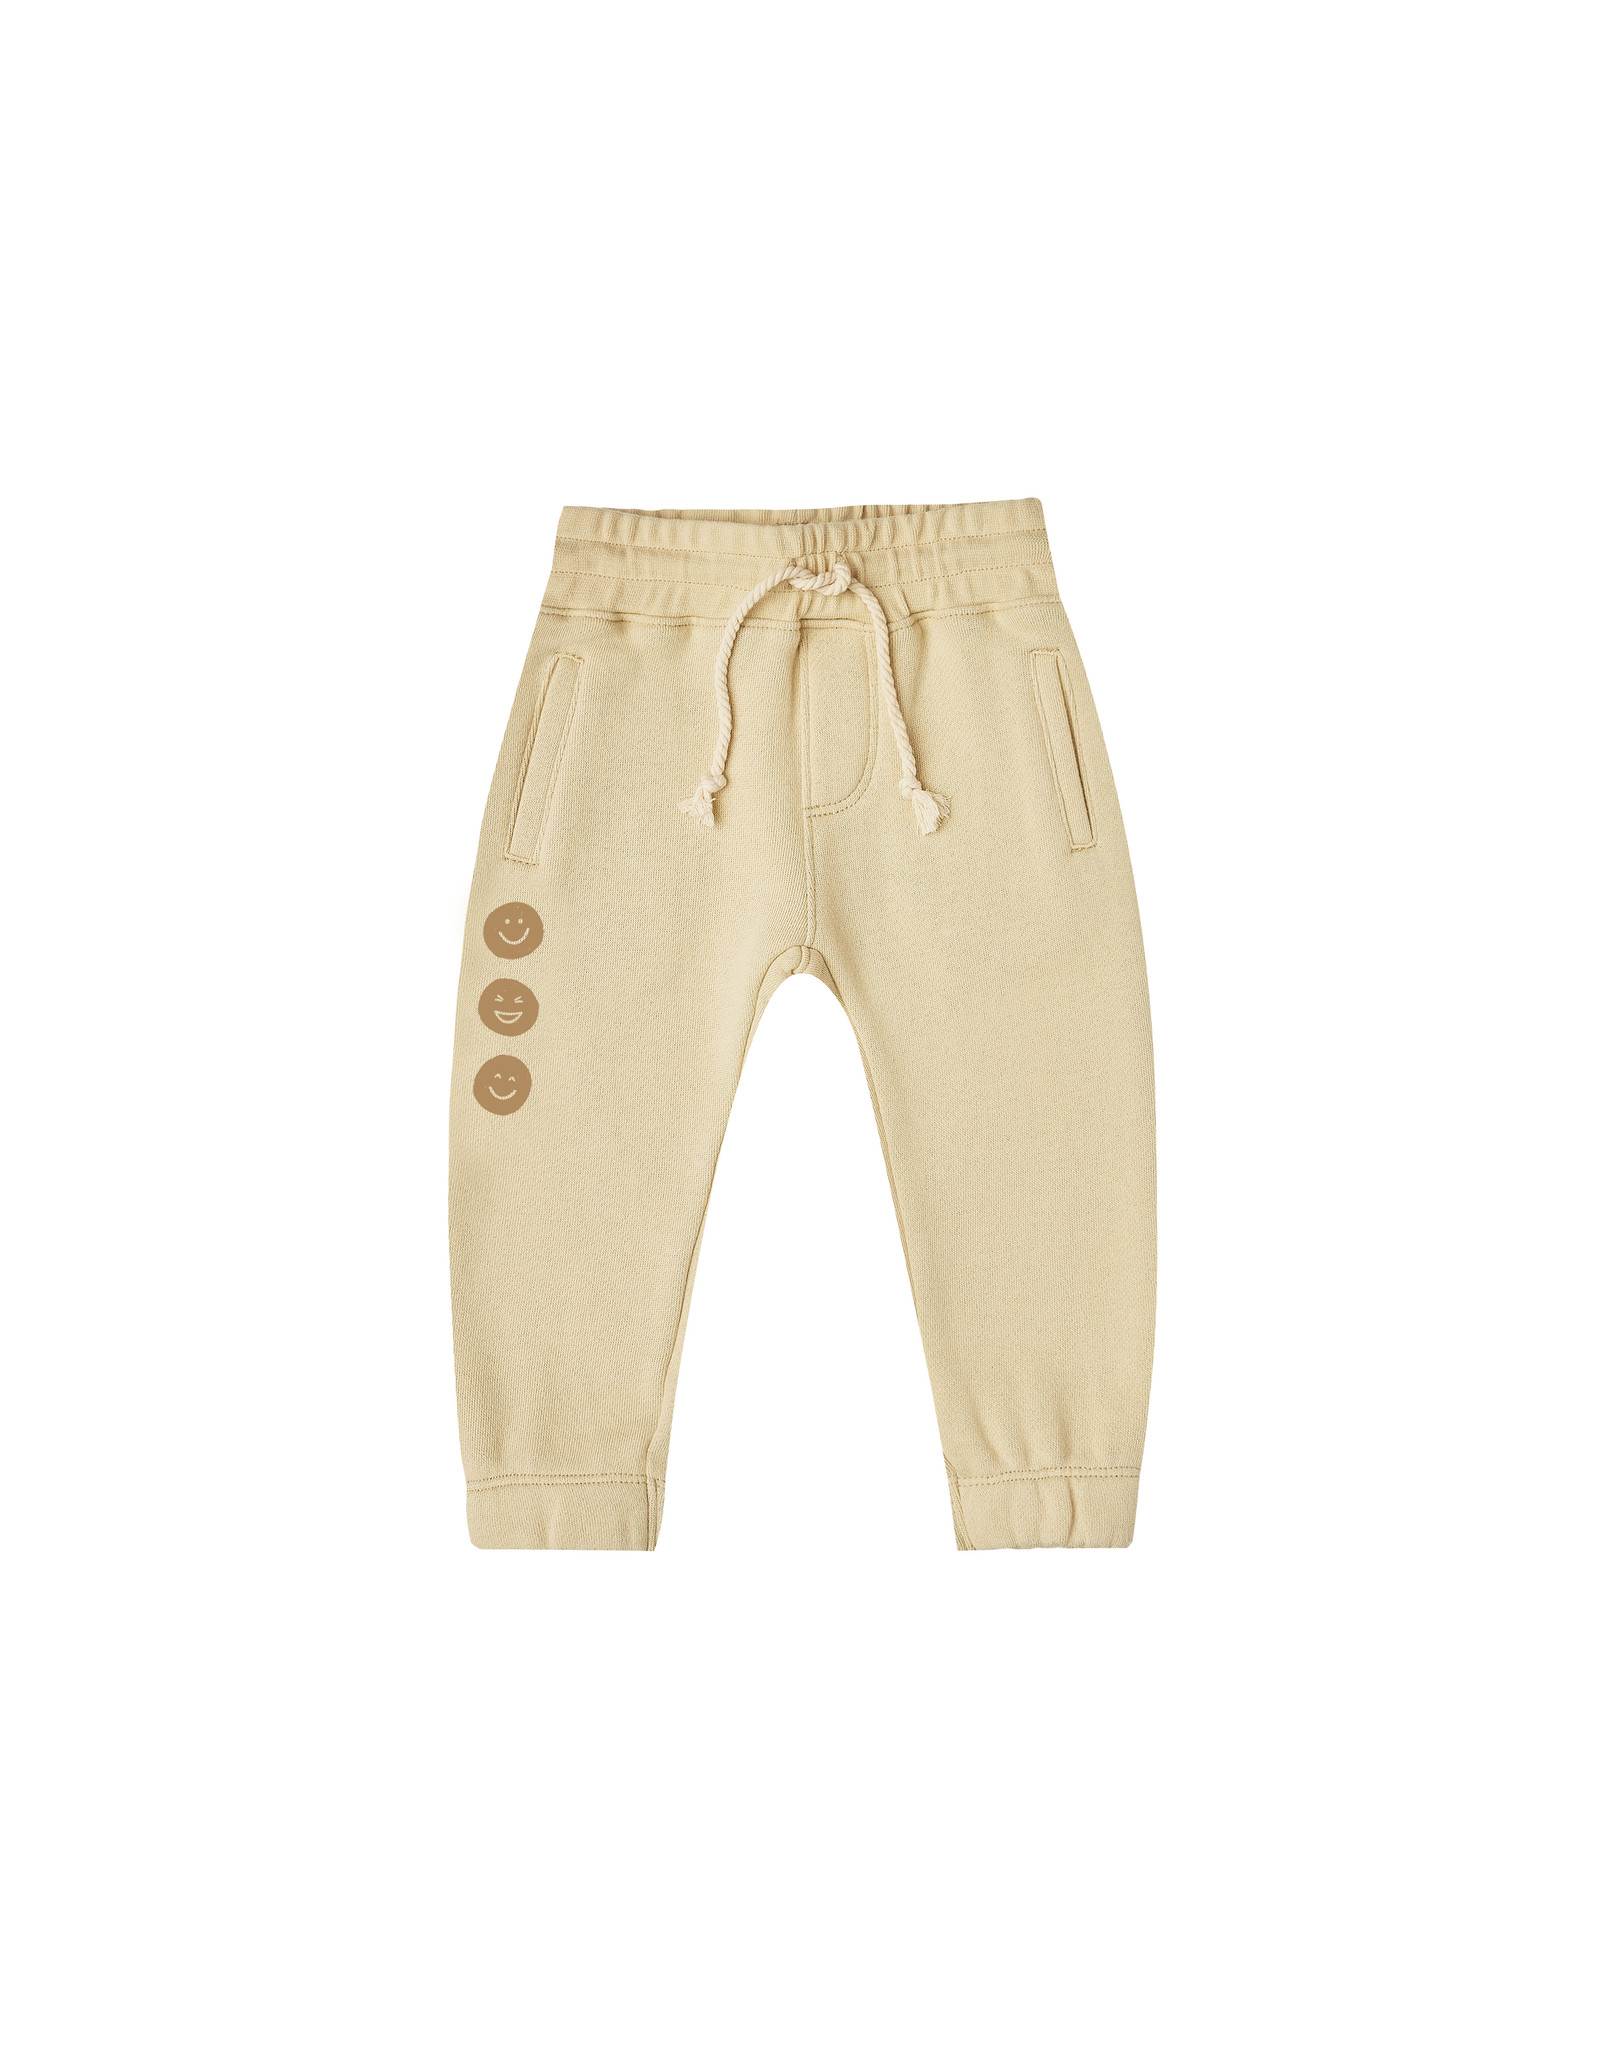 Rylee and Cru Happy Face jogger pant